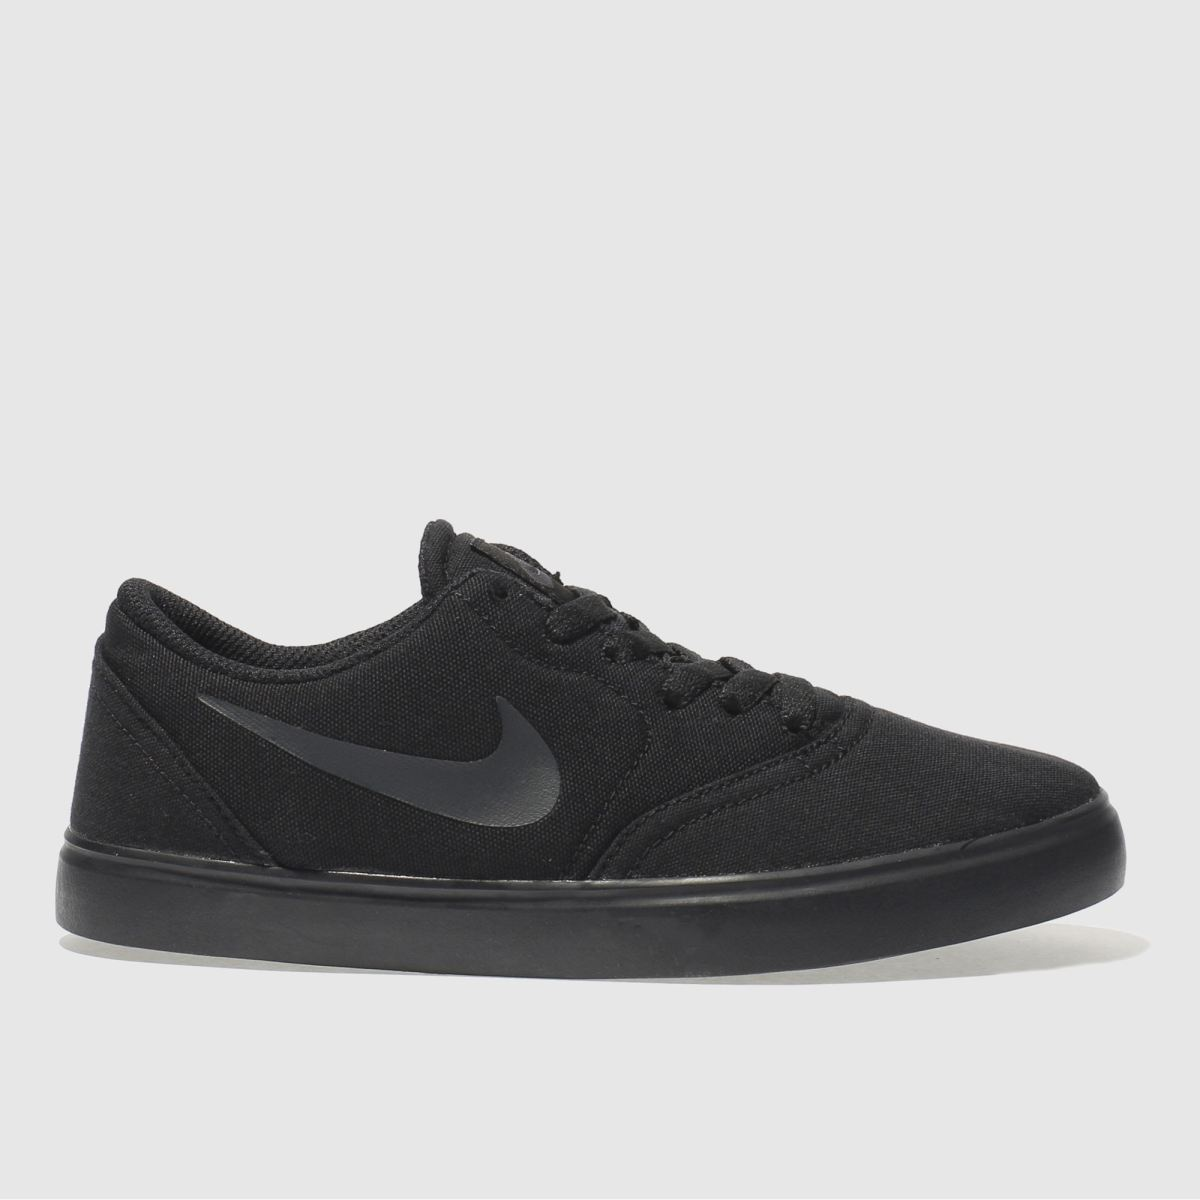 nike sb black check canvas Youth Trainers